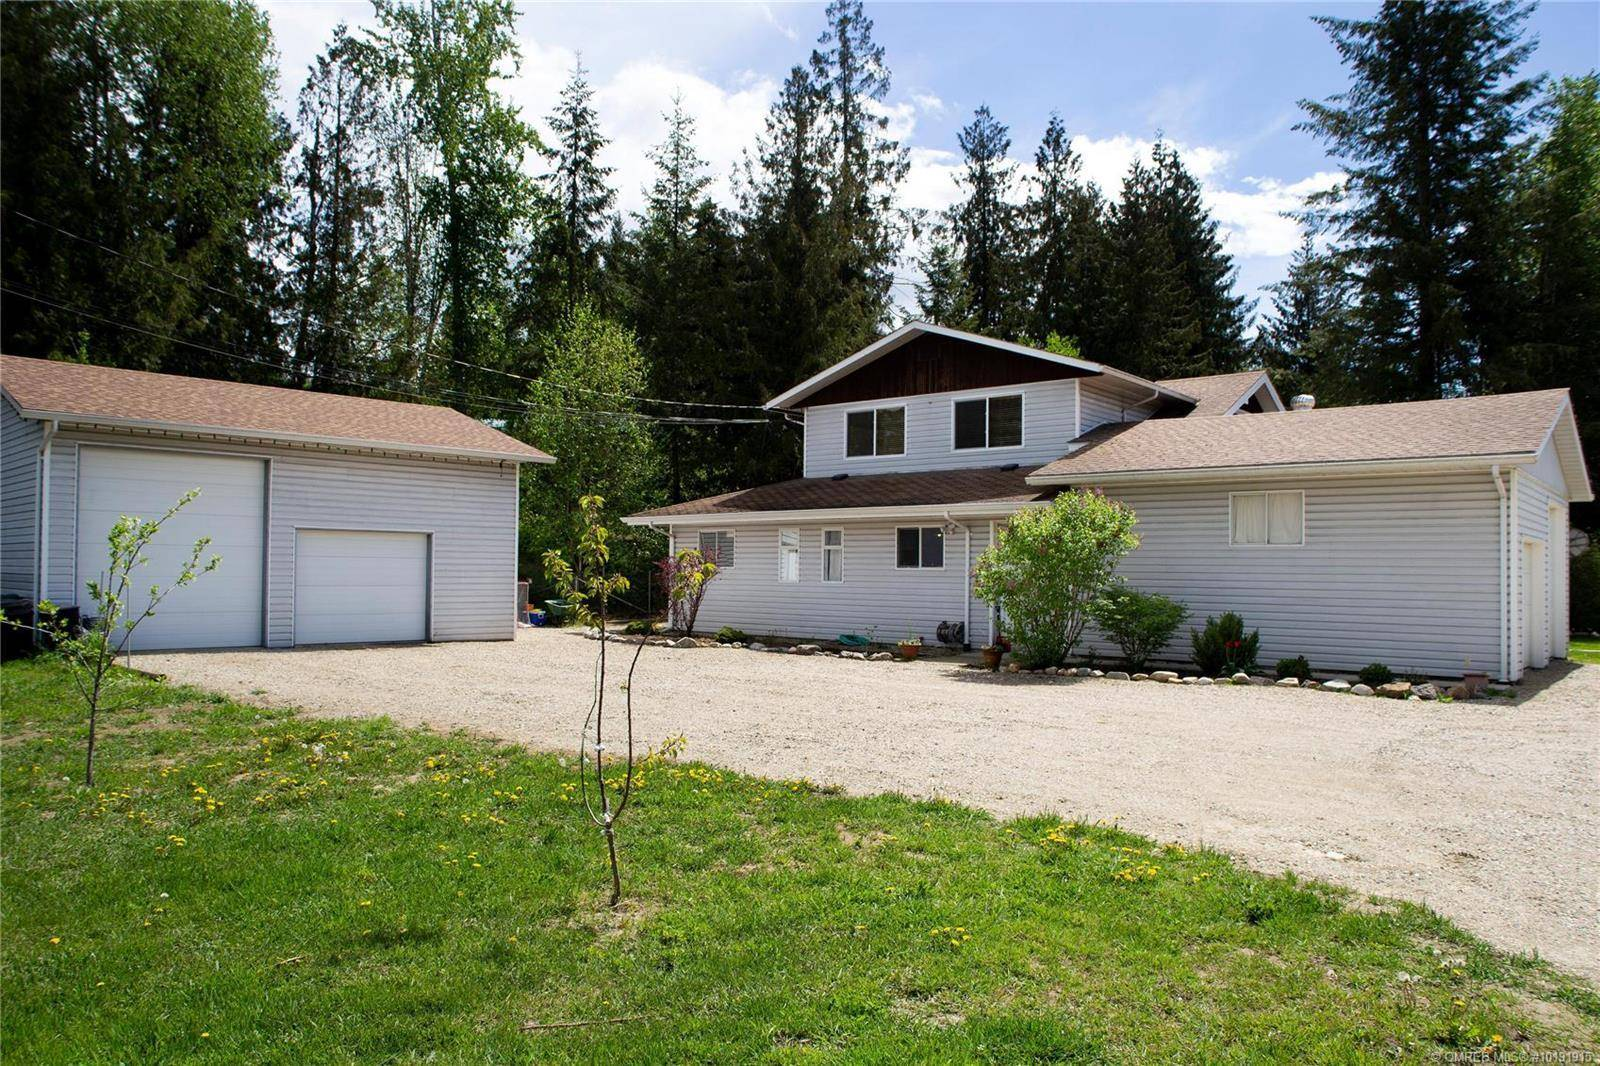 House for sale at 8050 Sonora Rd Southeast Salmon Arm British Columbia - MLS: 10191915